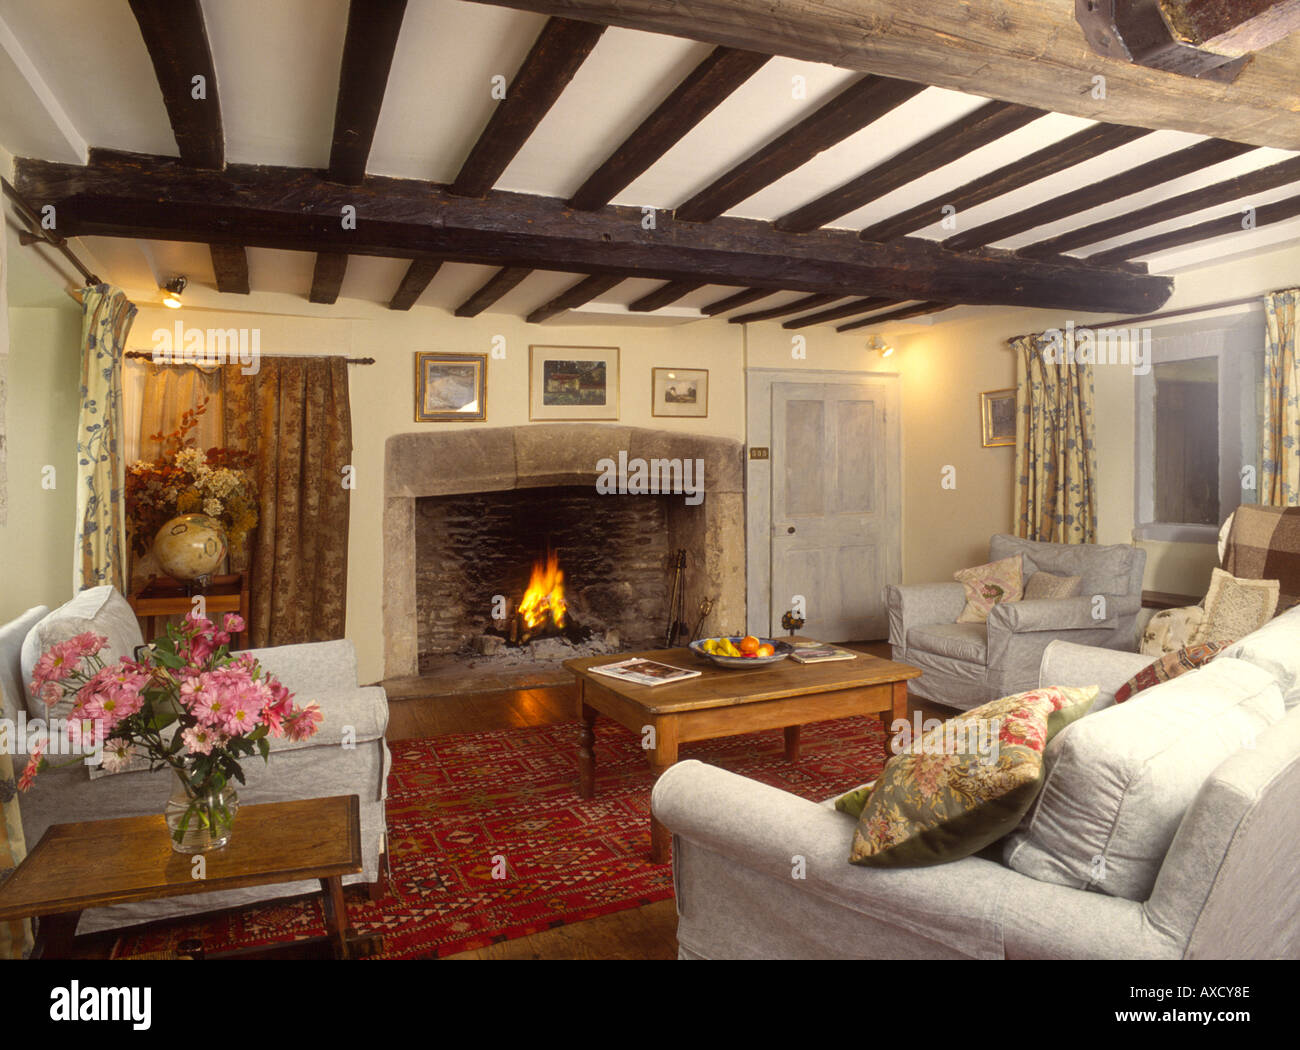 Traditional Sitting Room With Oak Beams And A Large Fireplace